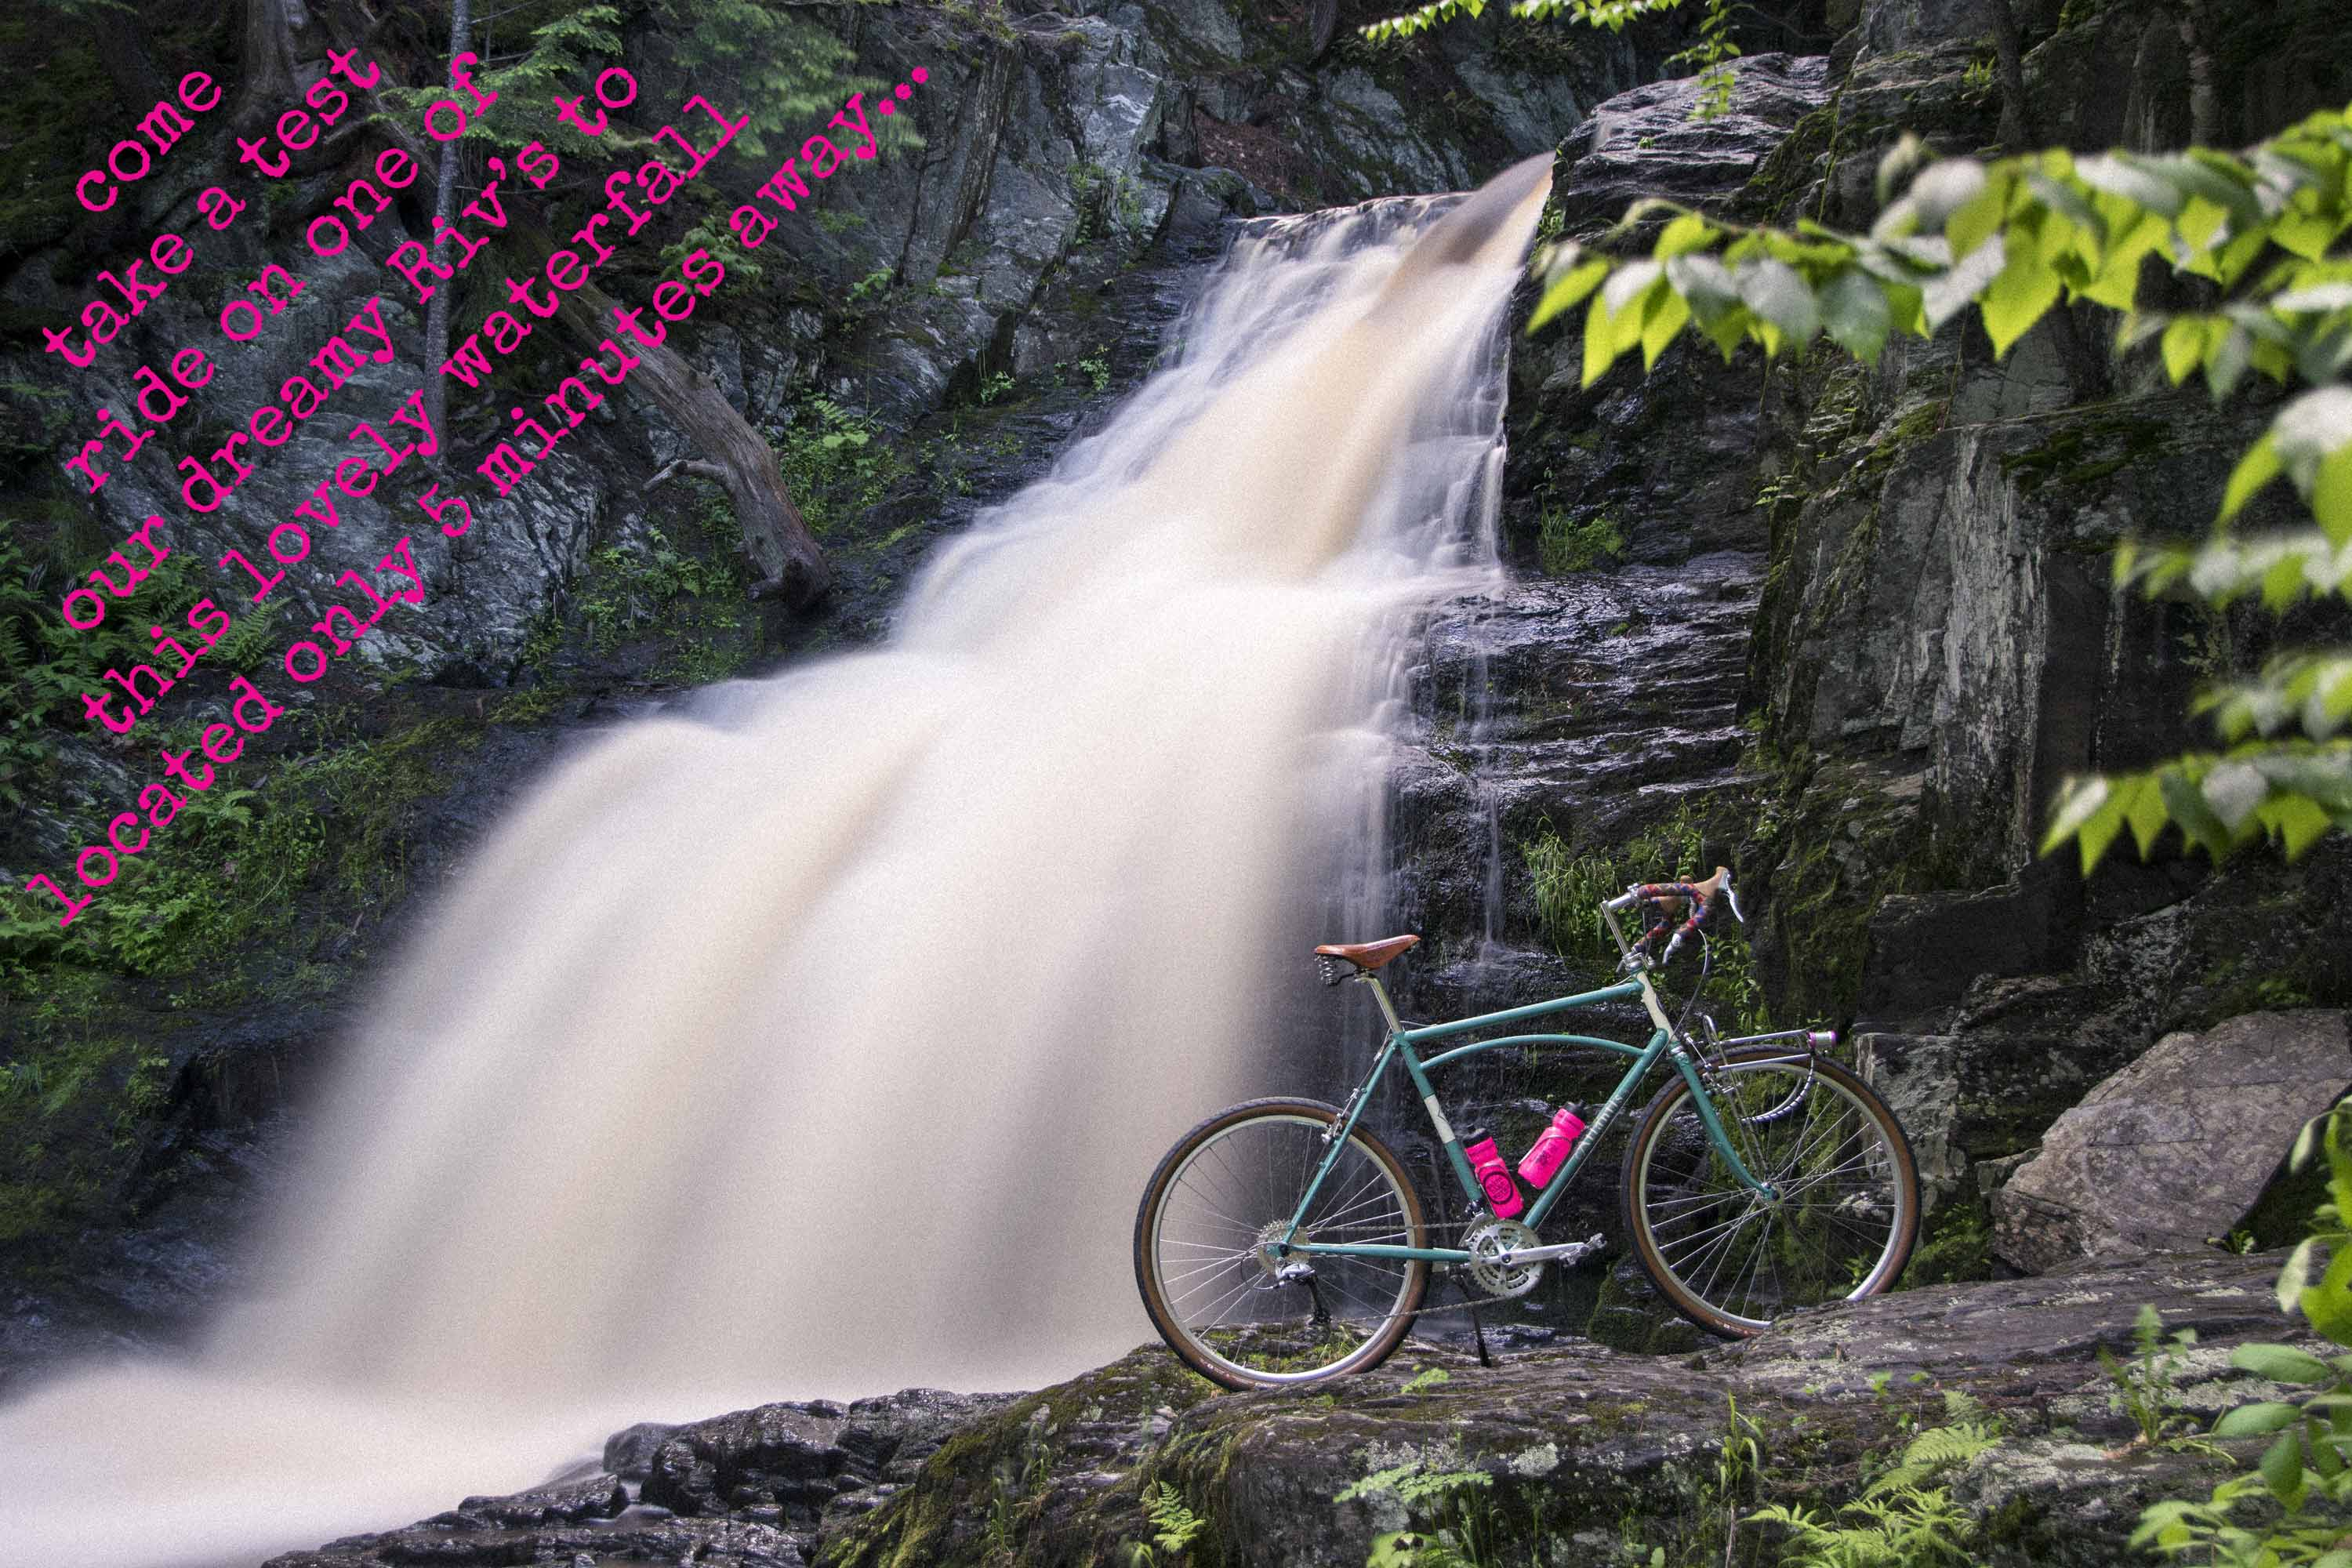 Rivendell MIT Atlantis and waterfall at Maine Bike Works